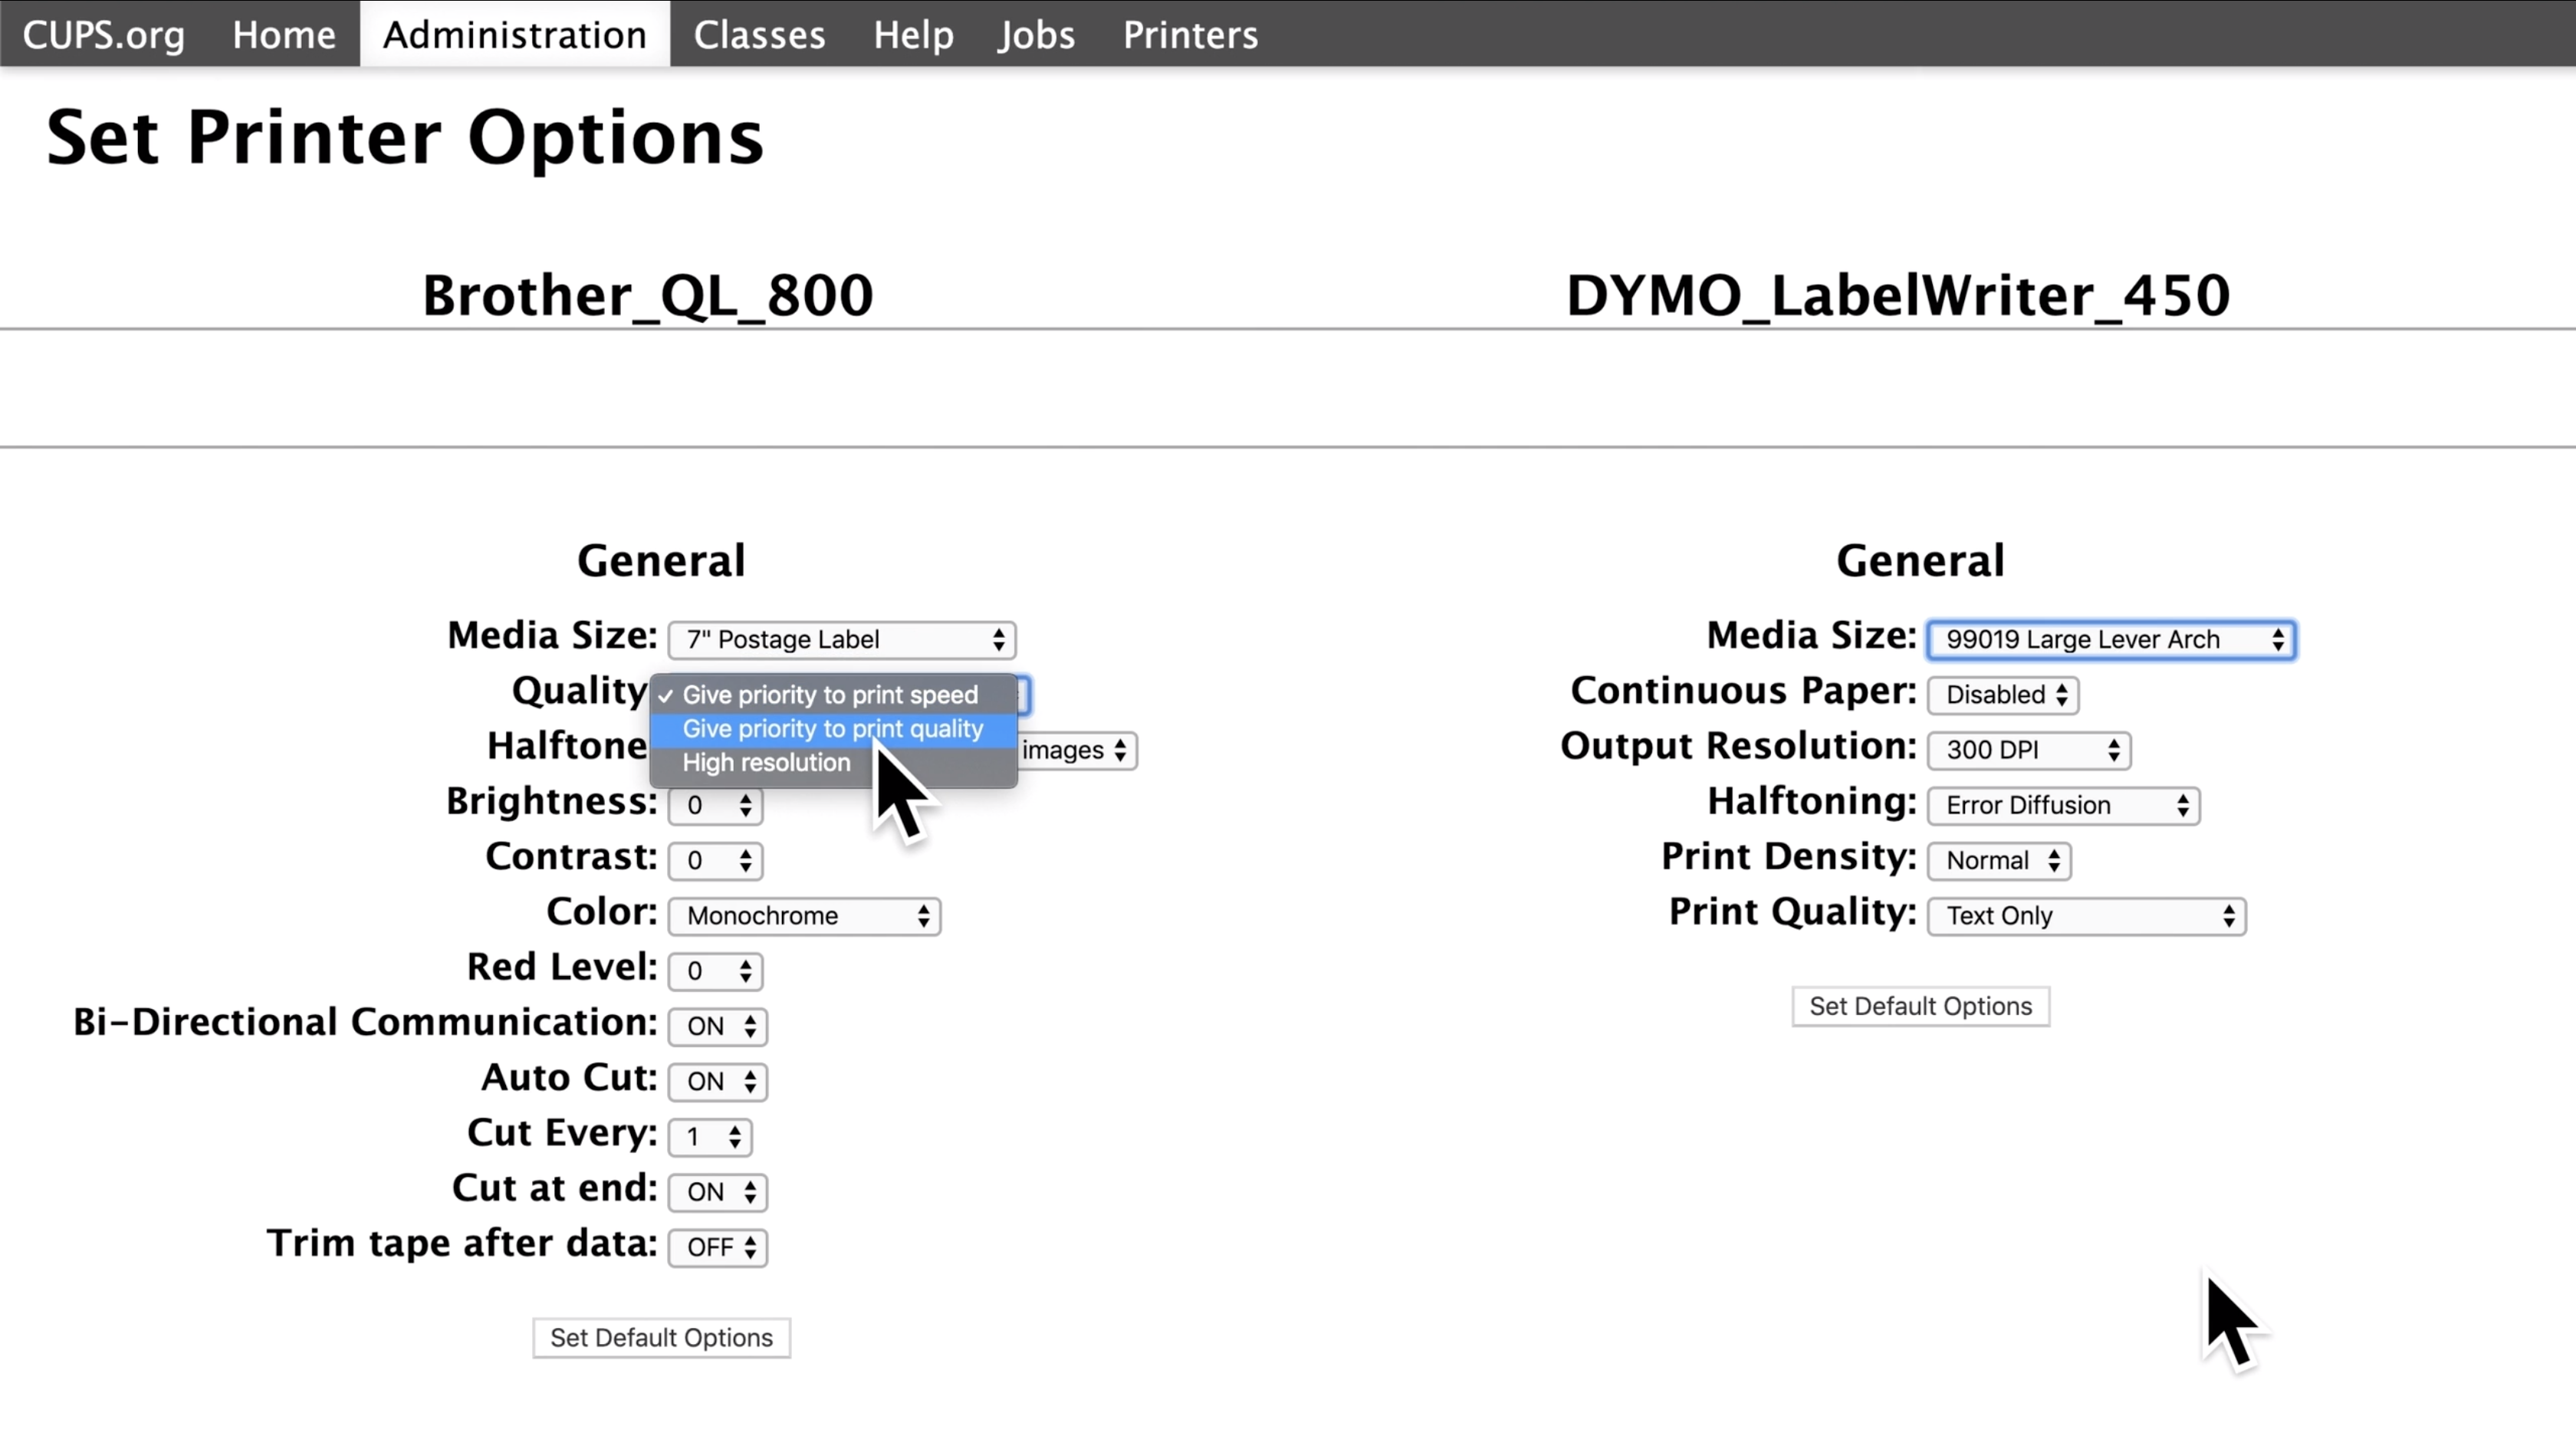 A screenshot of the CUPS preferences, in the 'Set Printer Options' section. Both the Brother QL 800 and the DYMO Label Writer 450 are shown with their options below. Under the Brother printer next to where it says 'Quality,' a drop down menu is open with the option 'Give priority to print quality' selected.